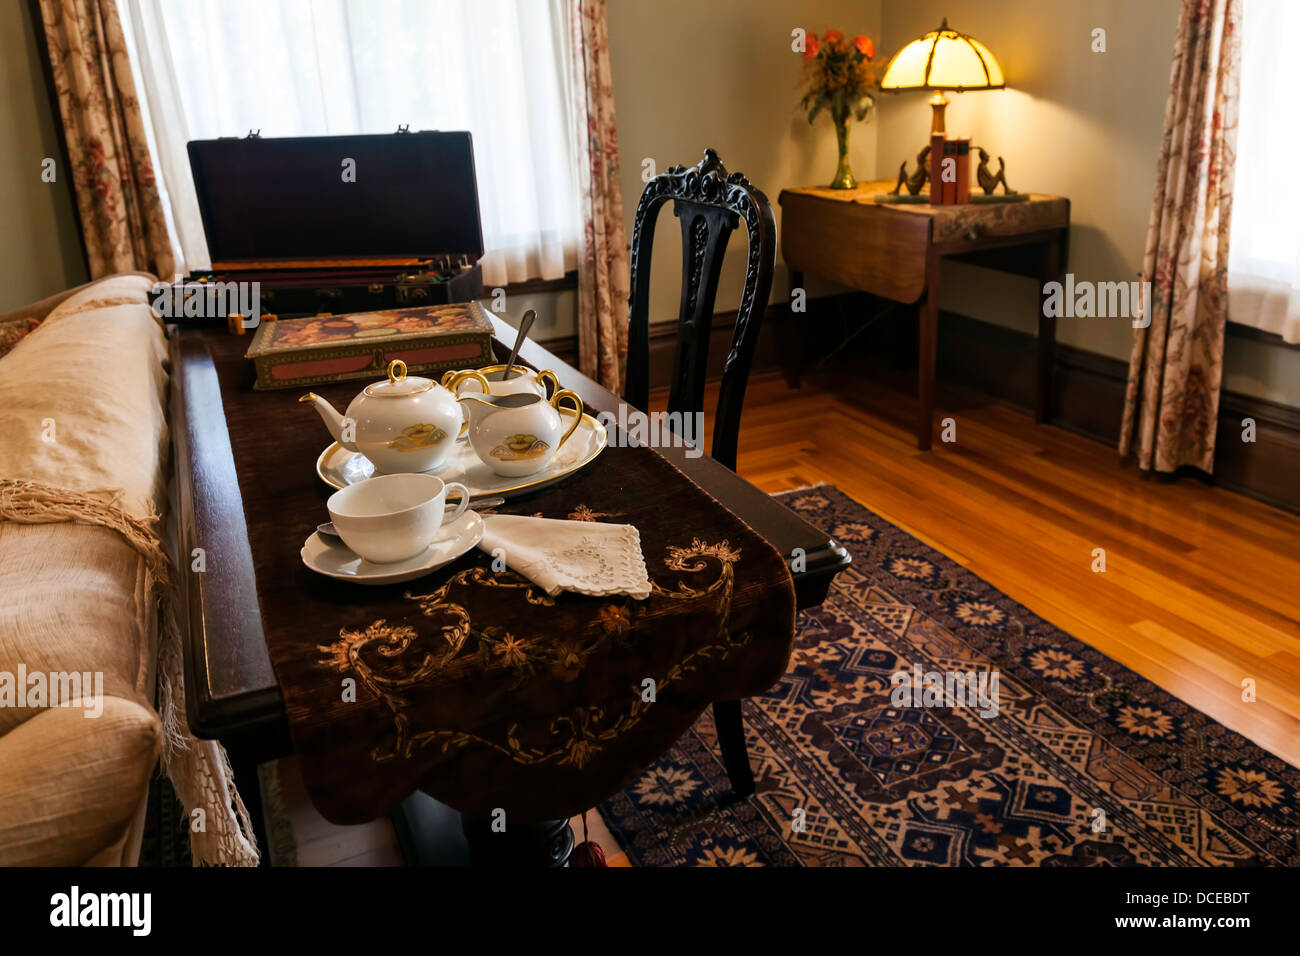 Tea service set on sofa table in period sitting room with Persian rug. - Stock Image